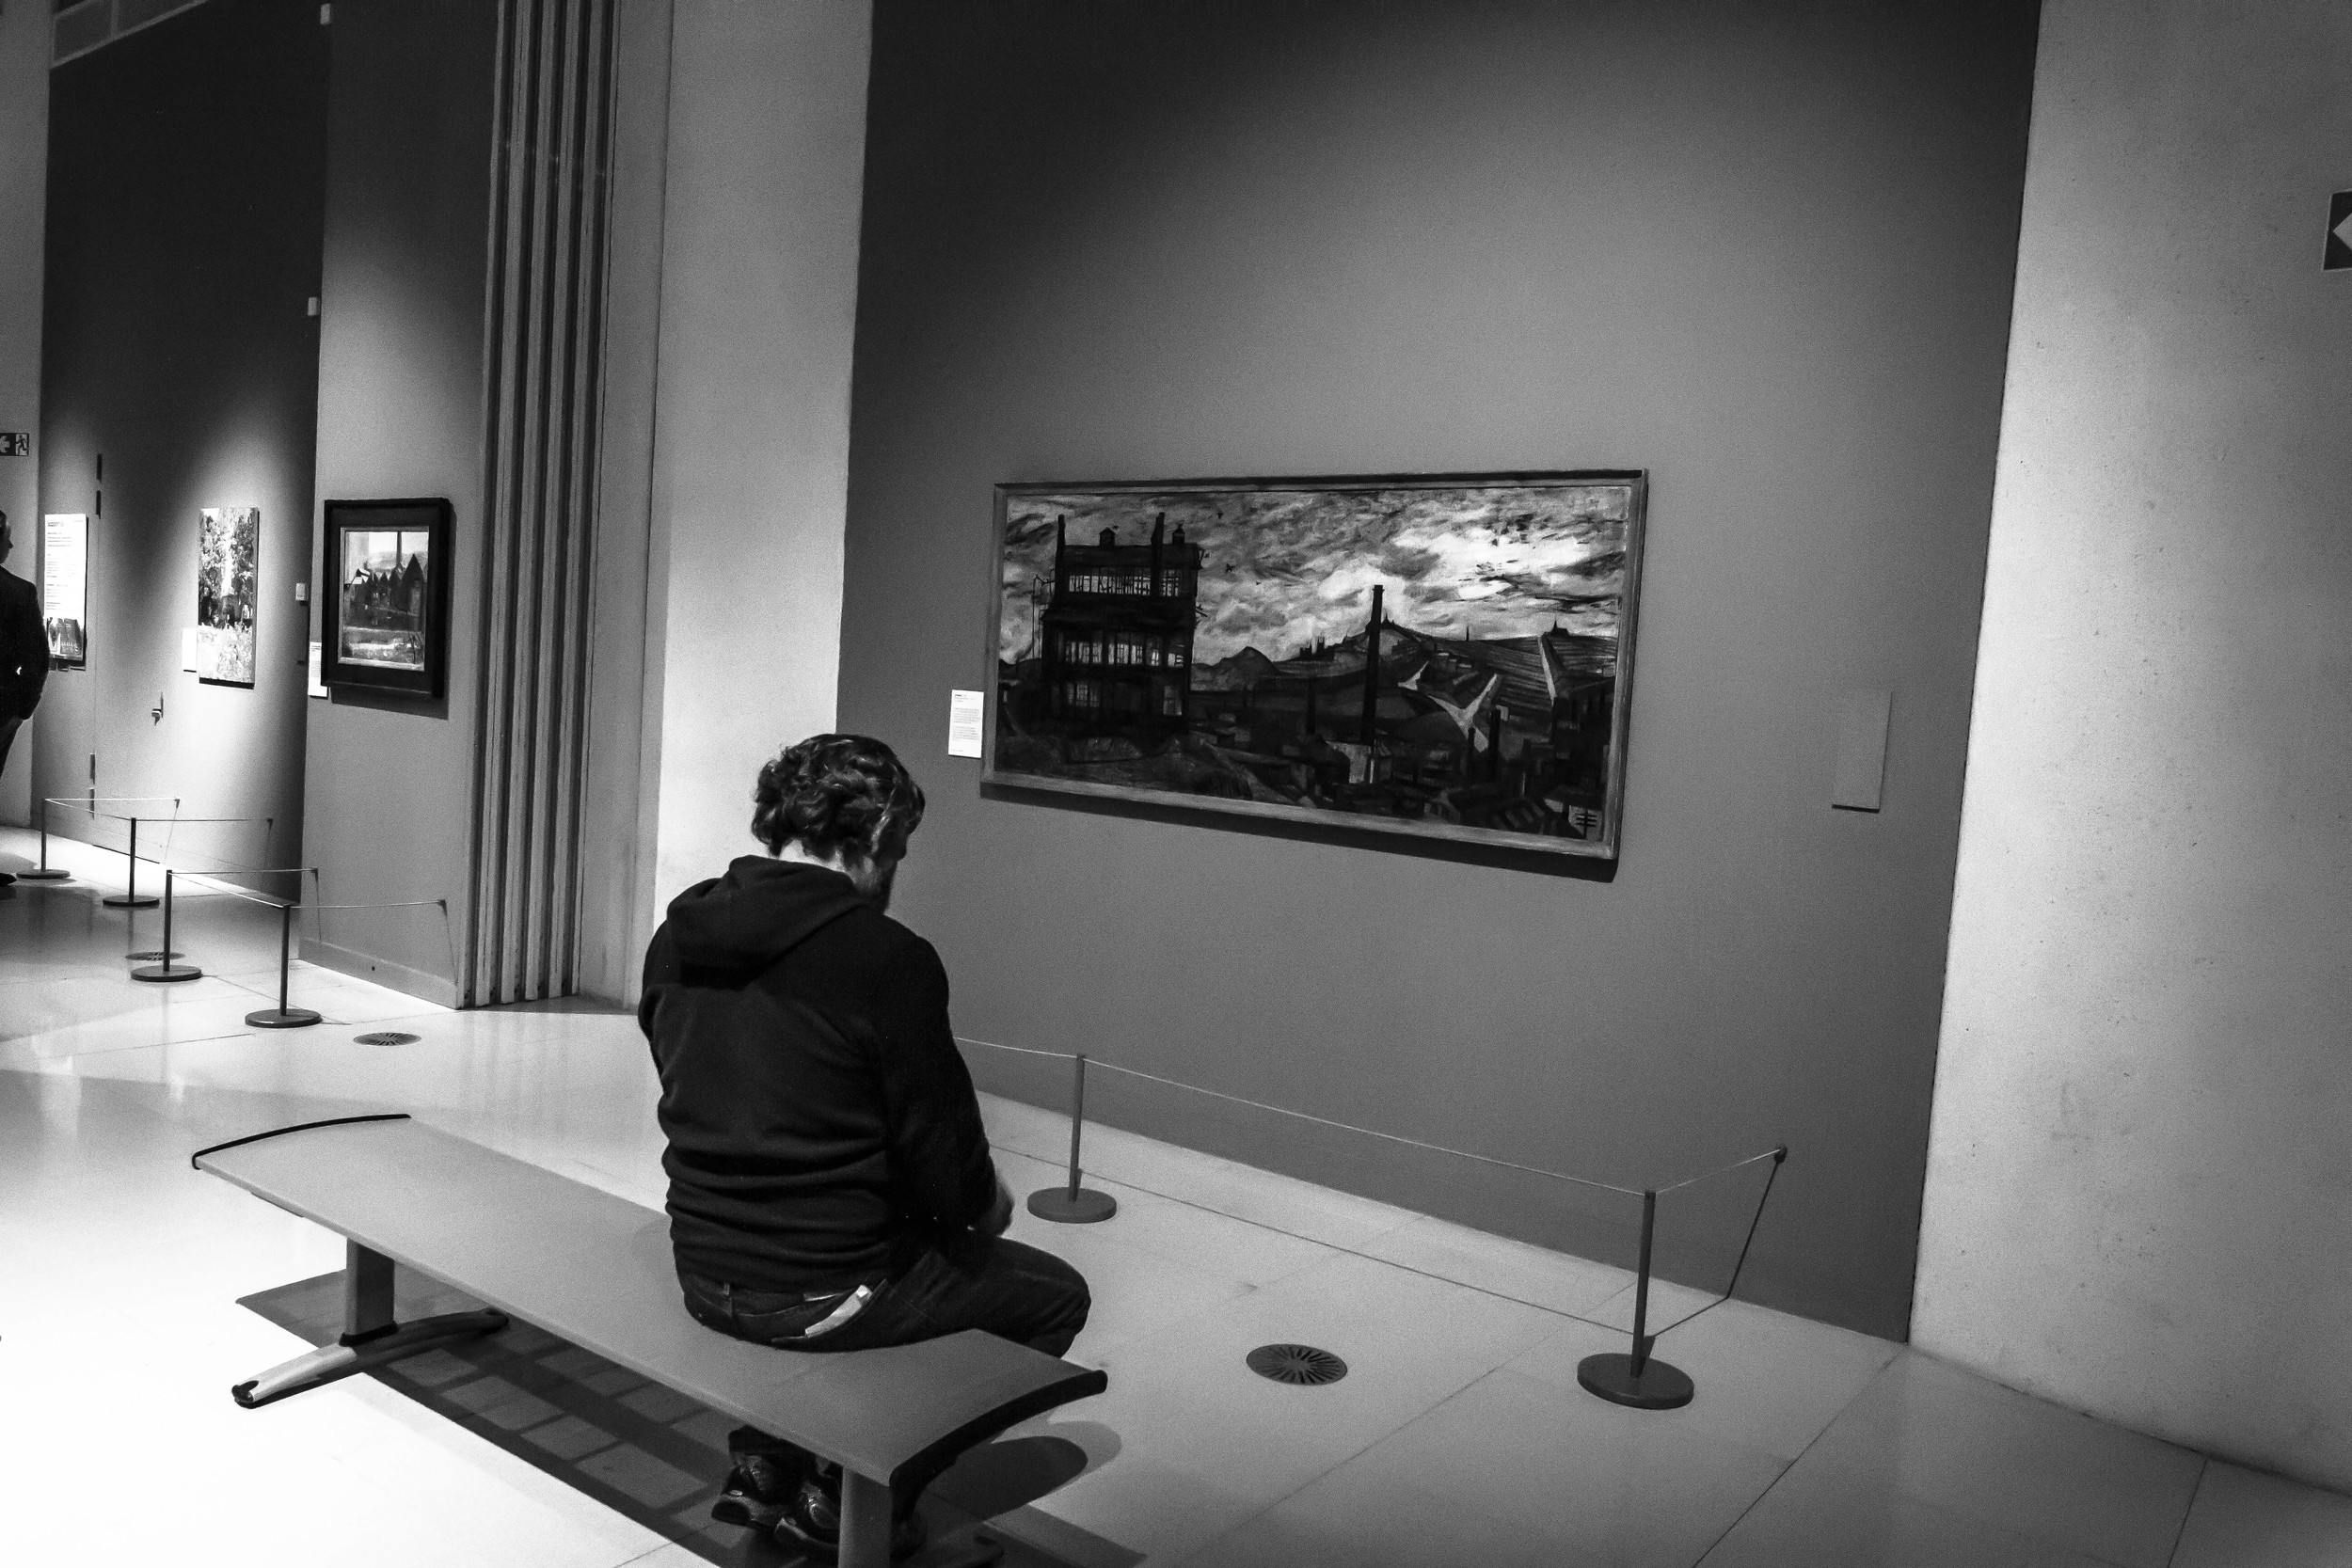 Reflecting in a museam